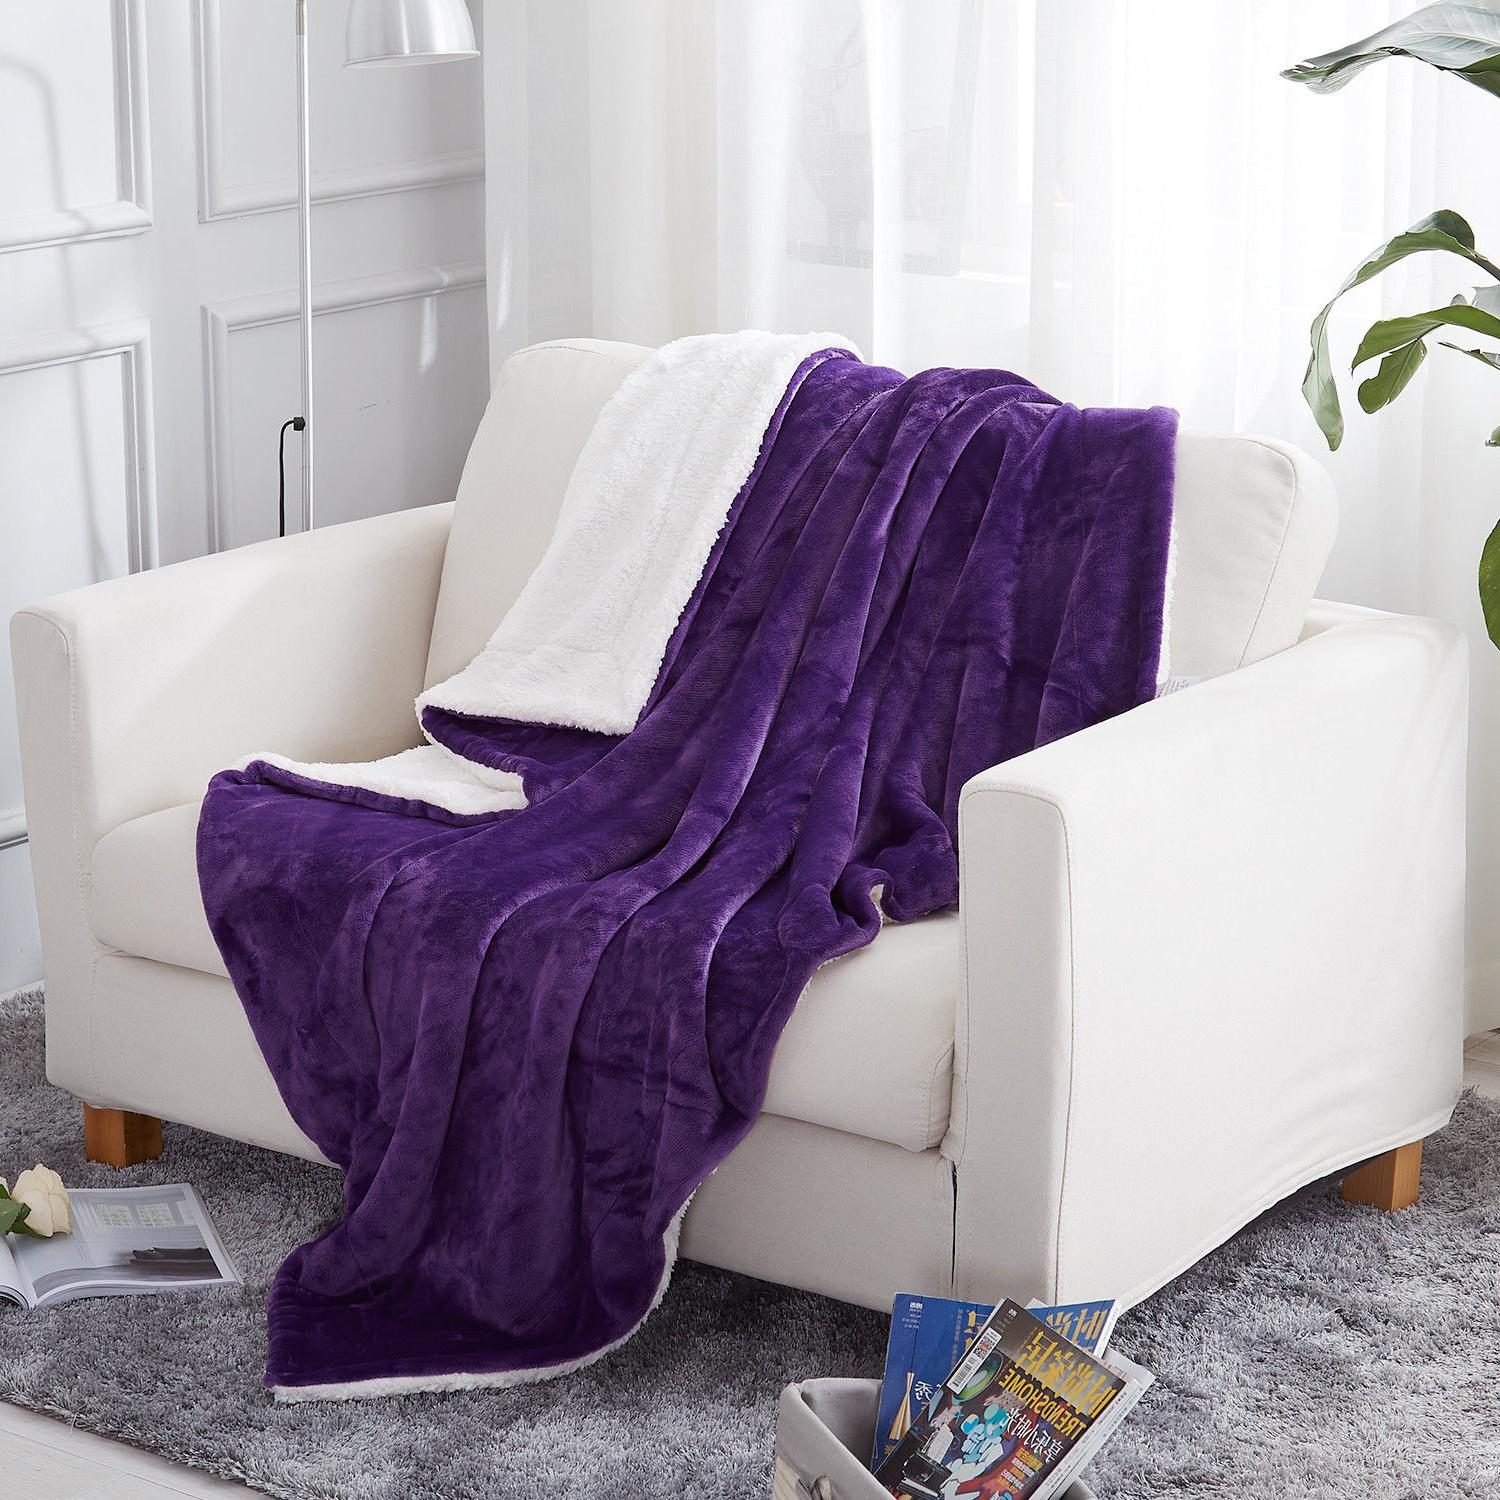 Plush Fuzzy Throw Blanket for Couch Bed